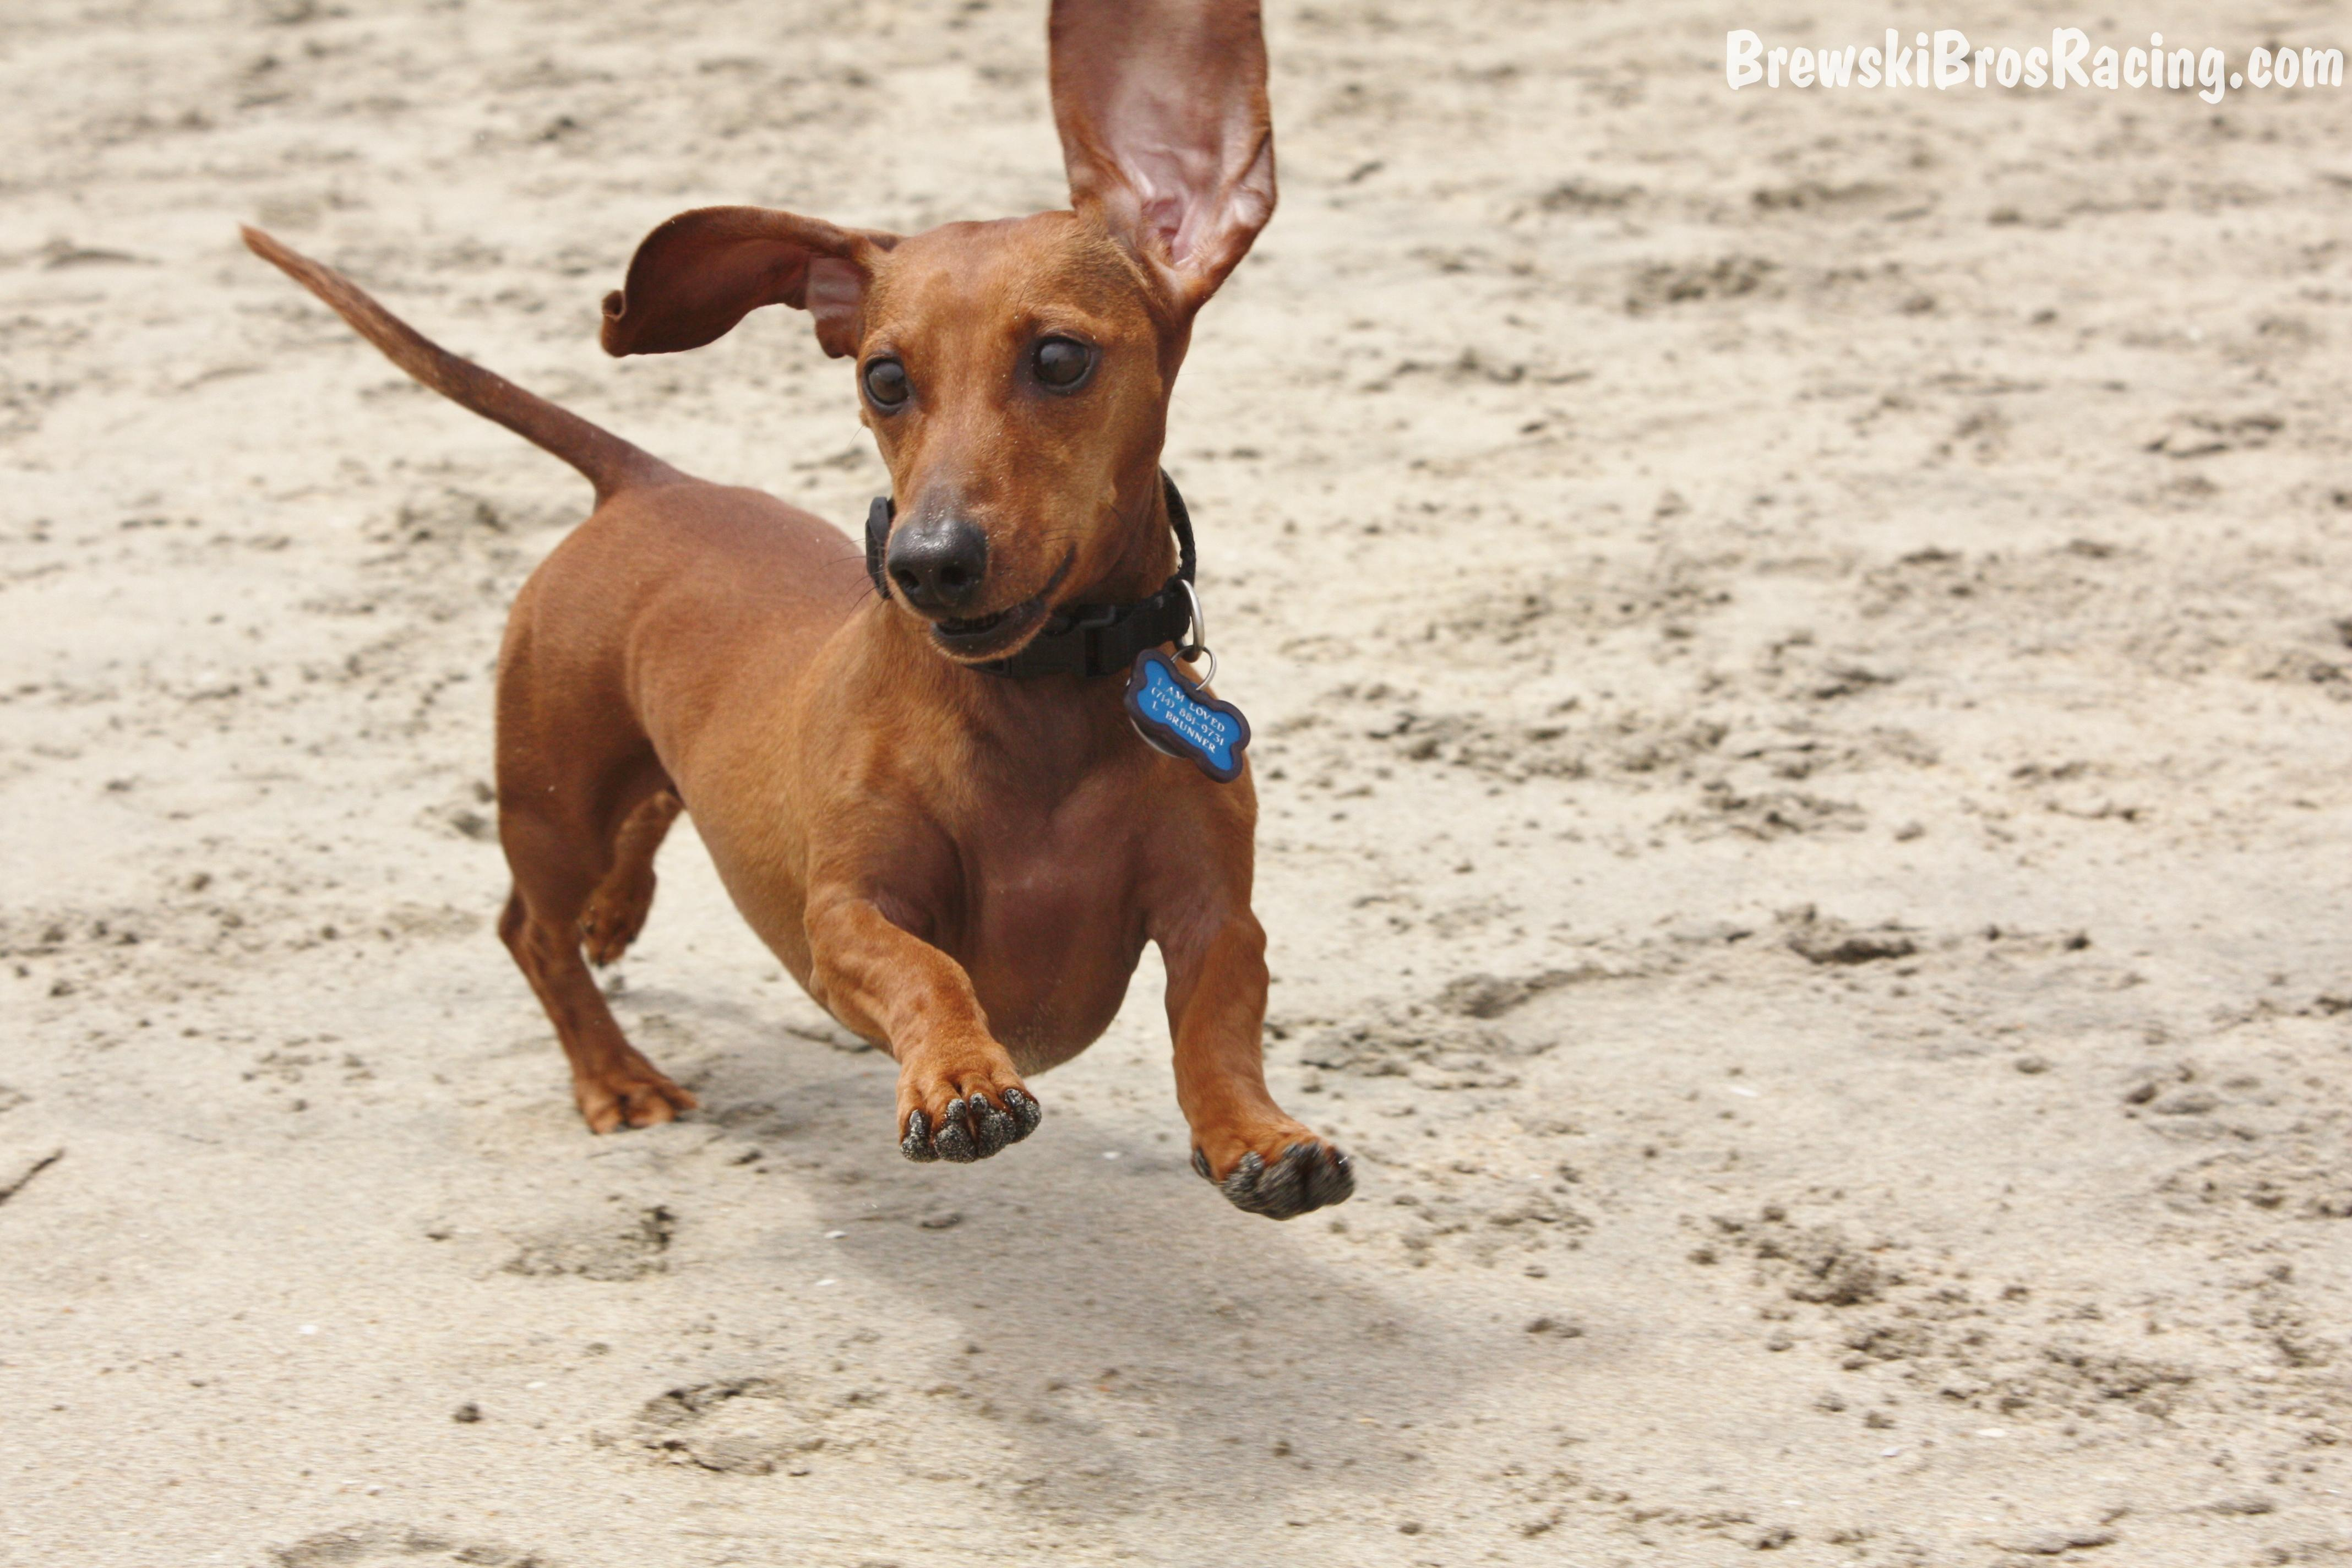 The Longest Wiener Dog Ever Recorded in addition Dachshund Races in addition Tres Perros Pit Bull Matan Nina En together with Animals General moreover Dachshund Teckel Perro Salchicha. on weiner dog races